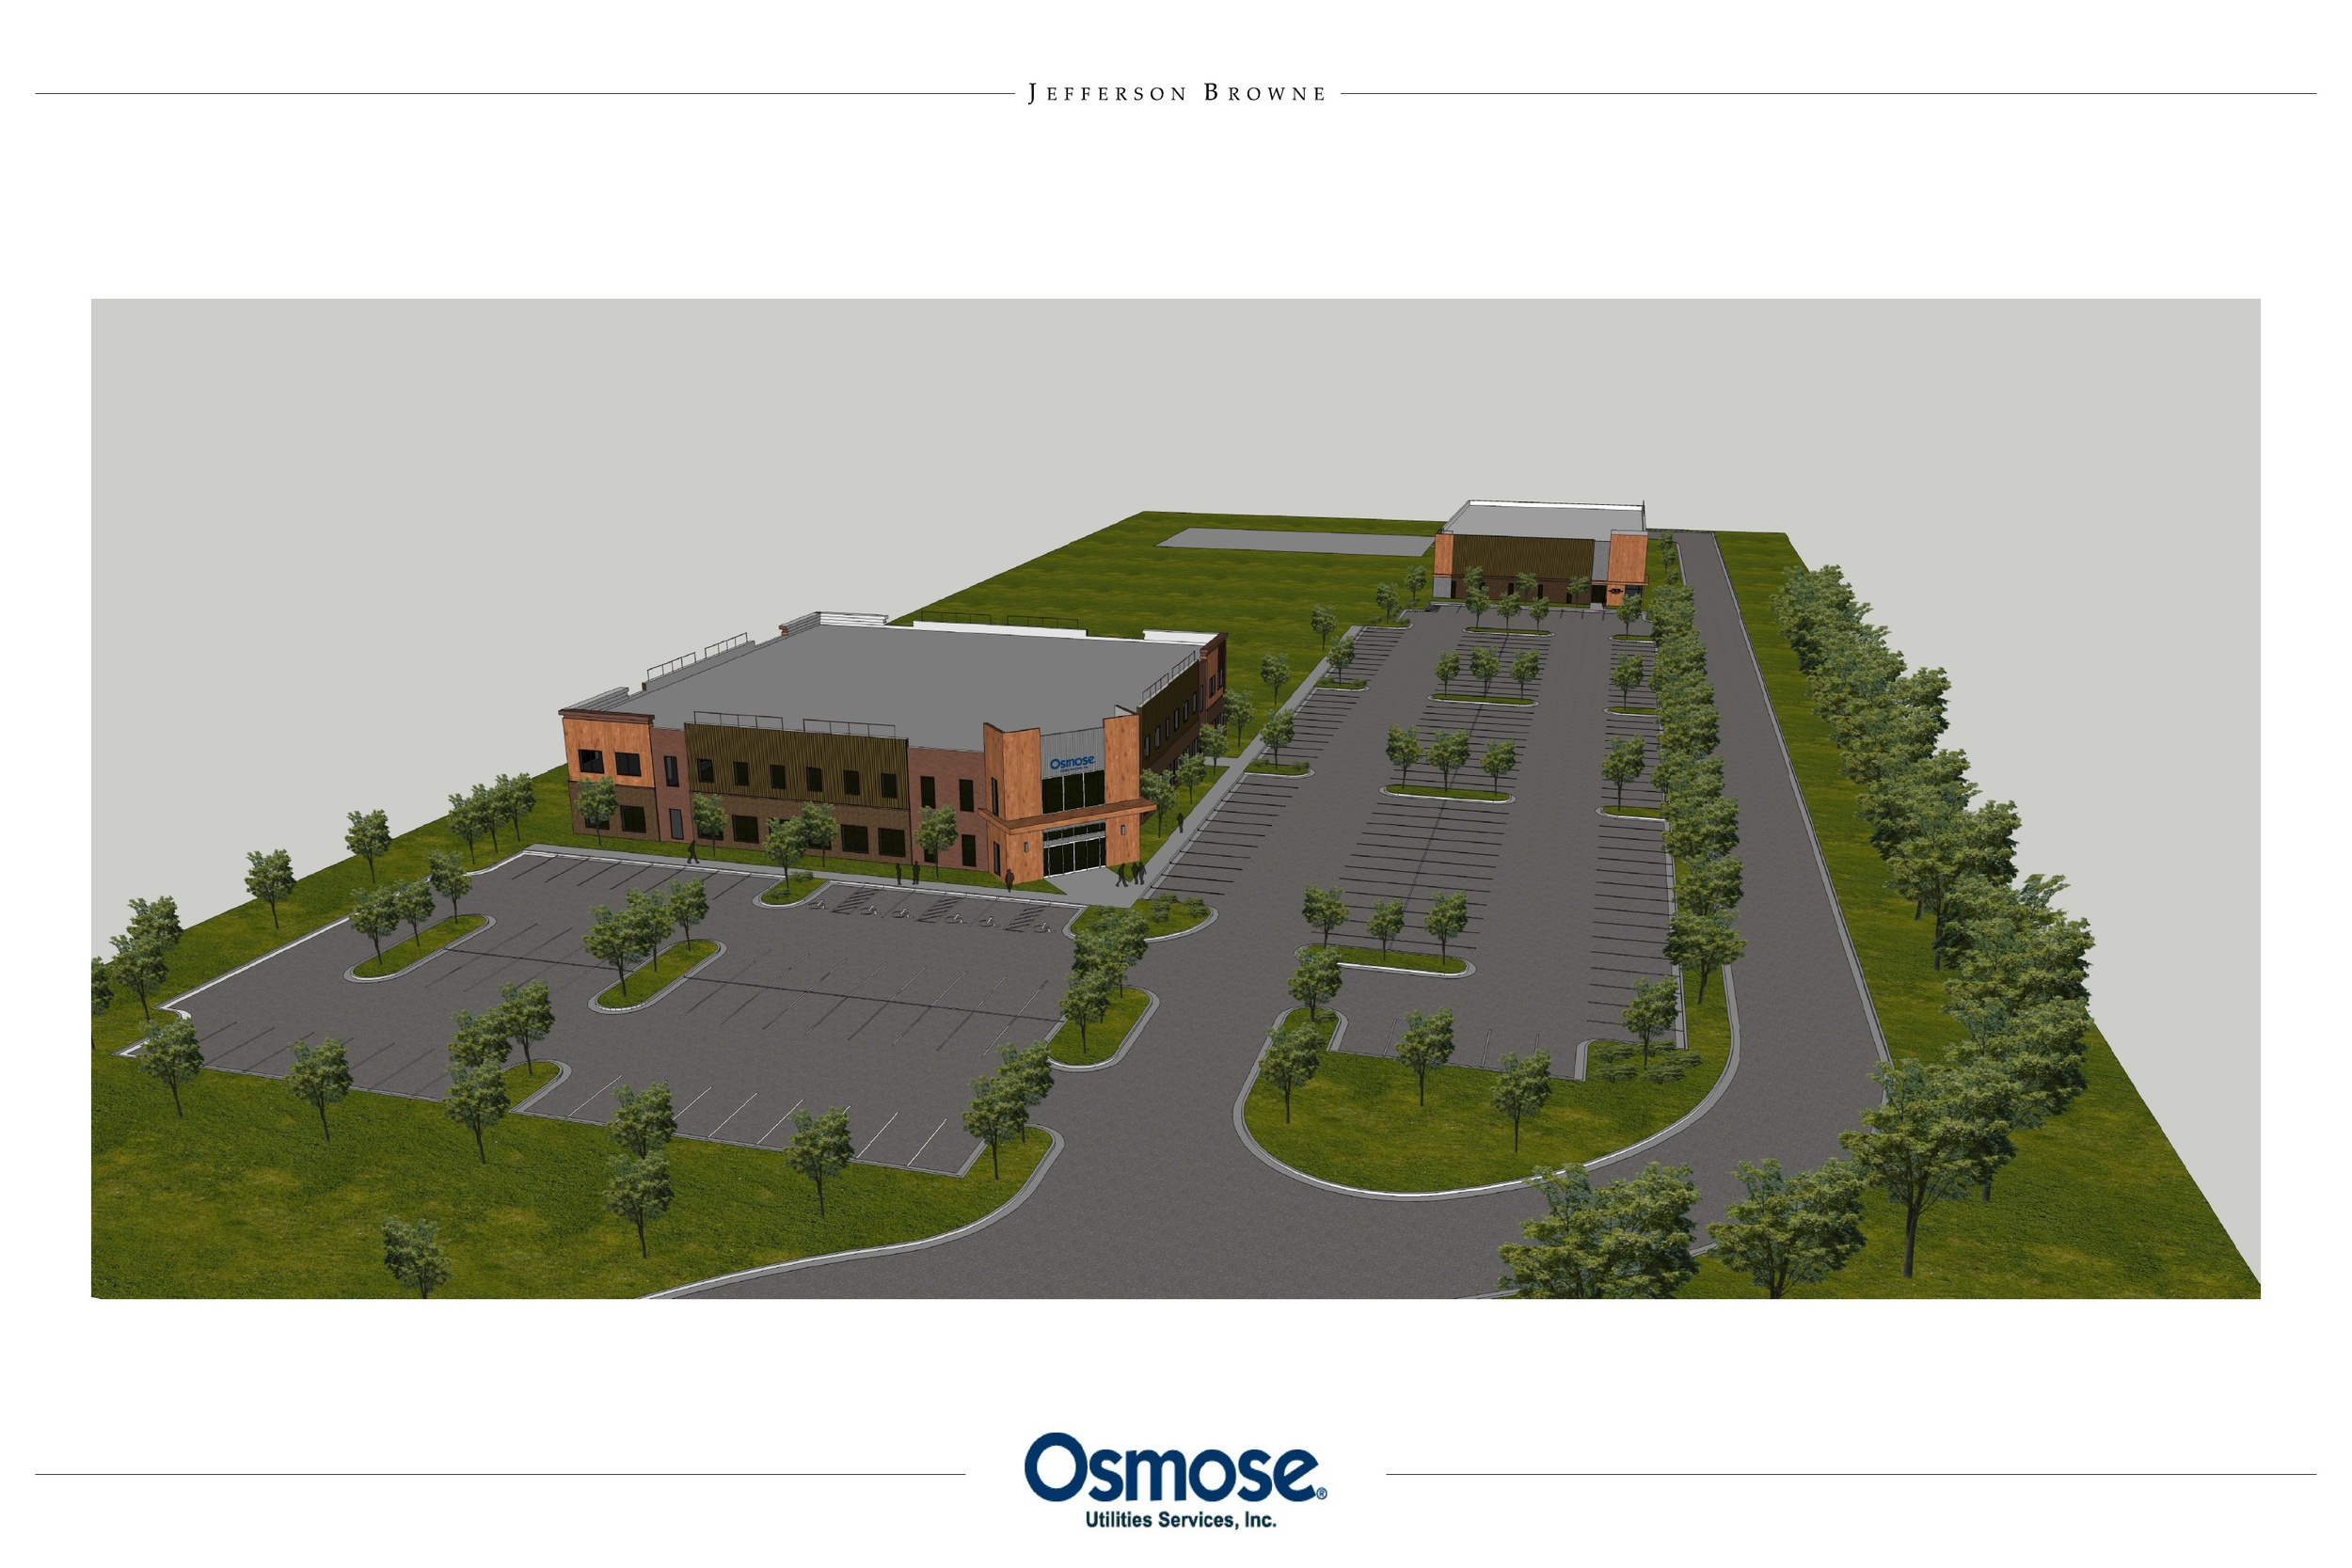 OVERALL SITE RENDERING 9.17.14.jpg